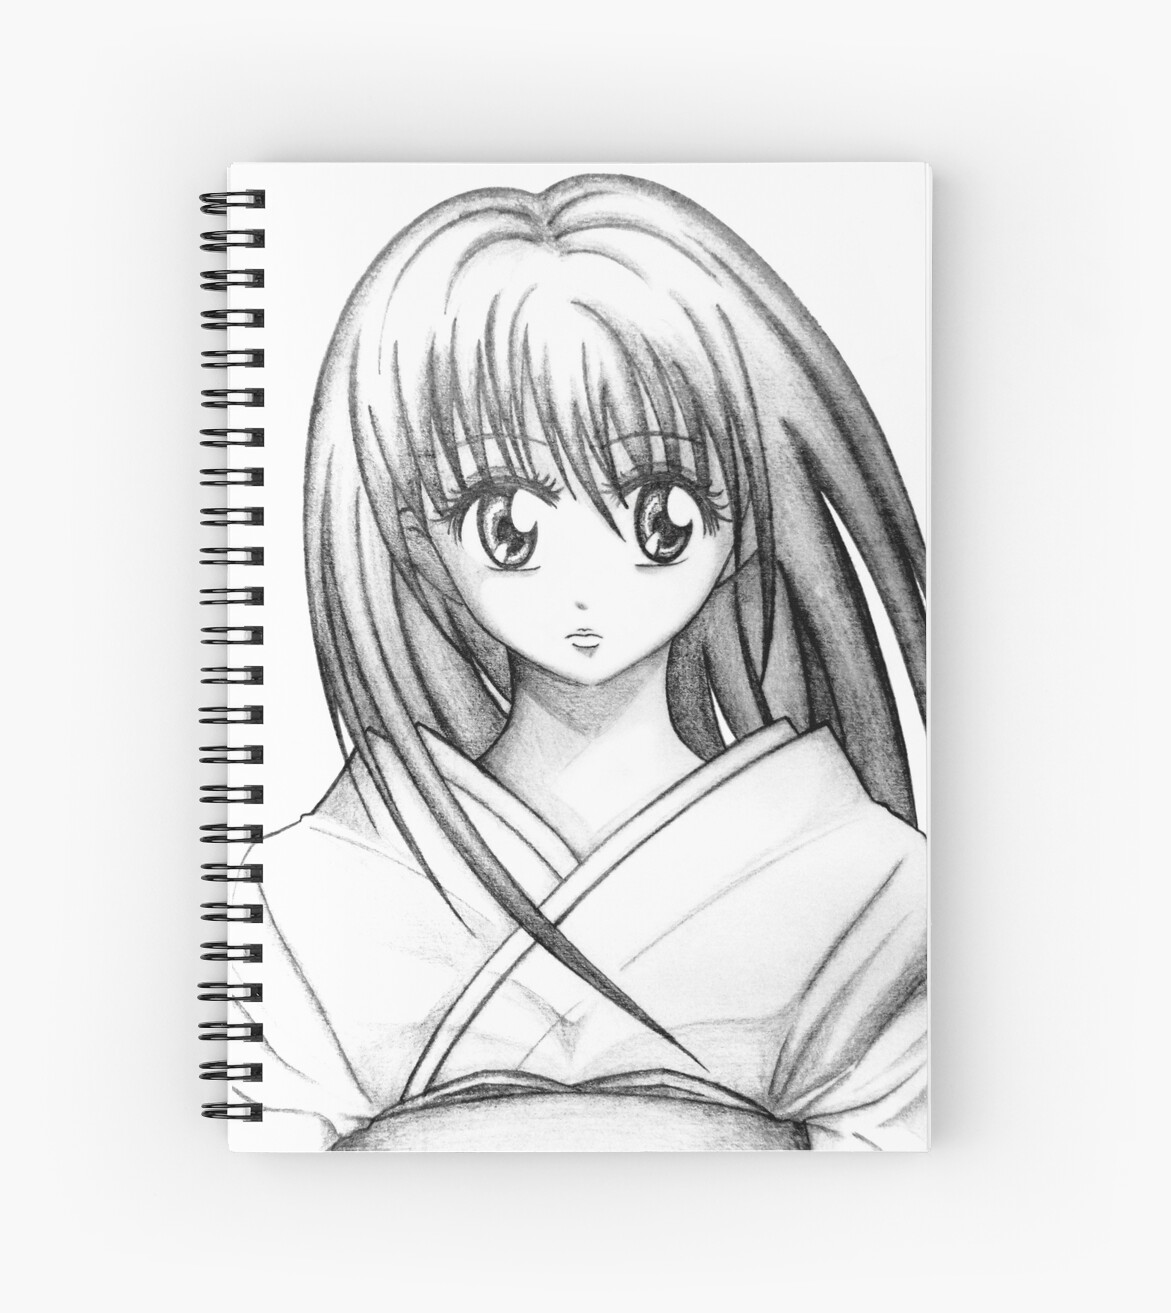 Pencil Dibujos Kawaii Lapiz Anime Art Wwwmiifotoscom